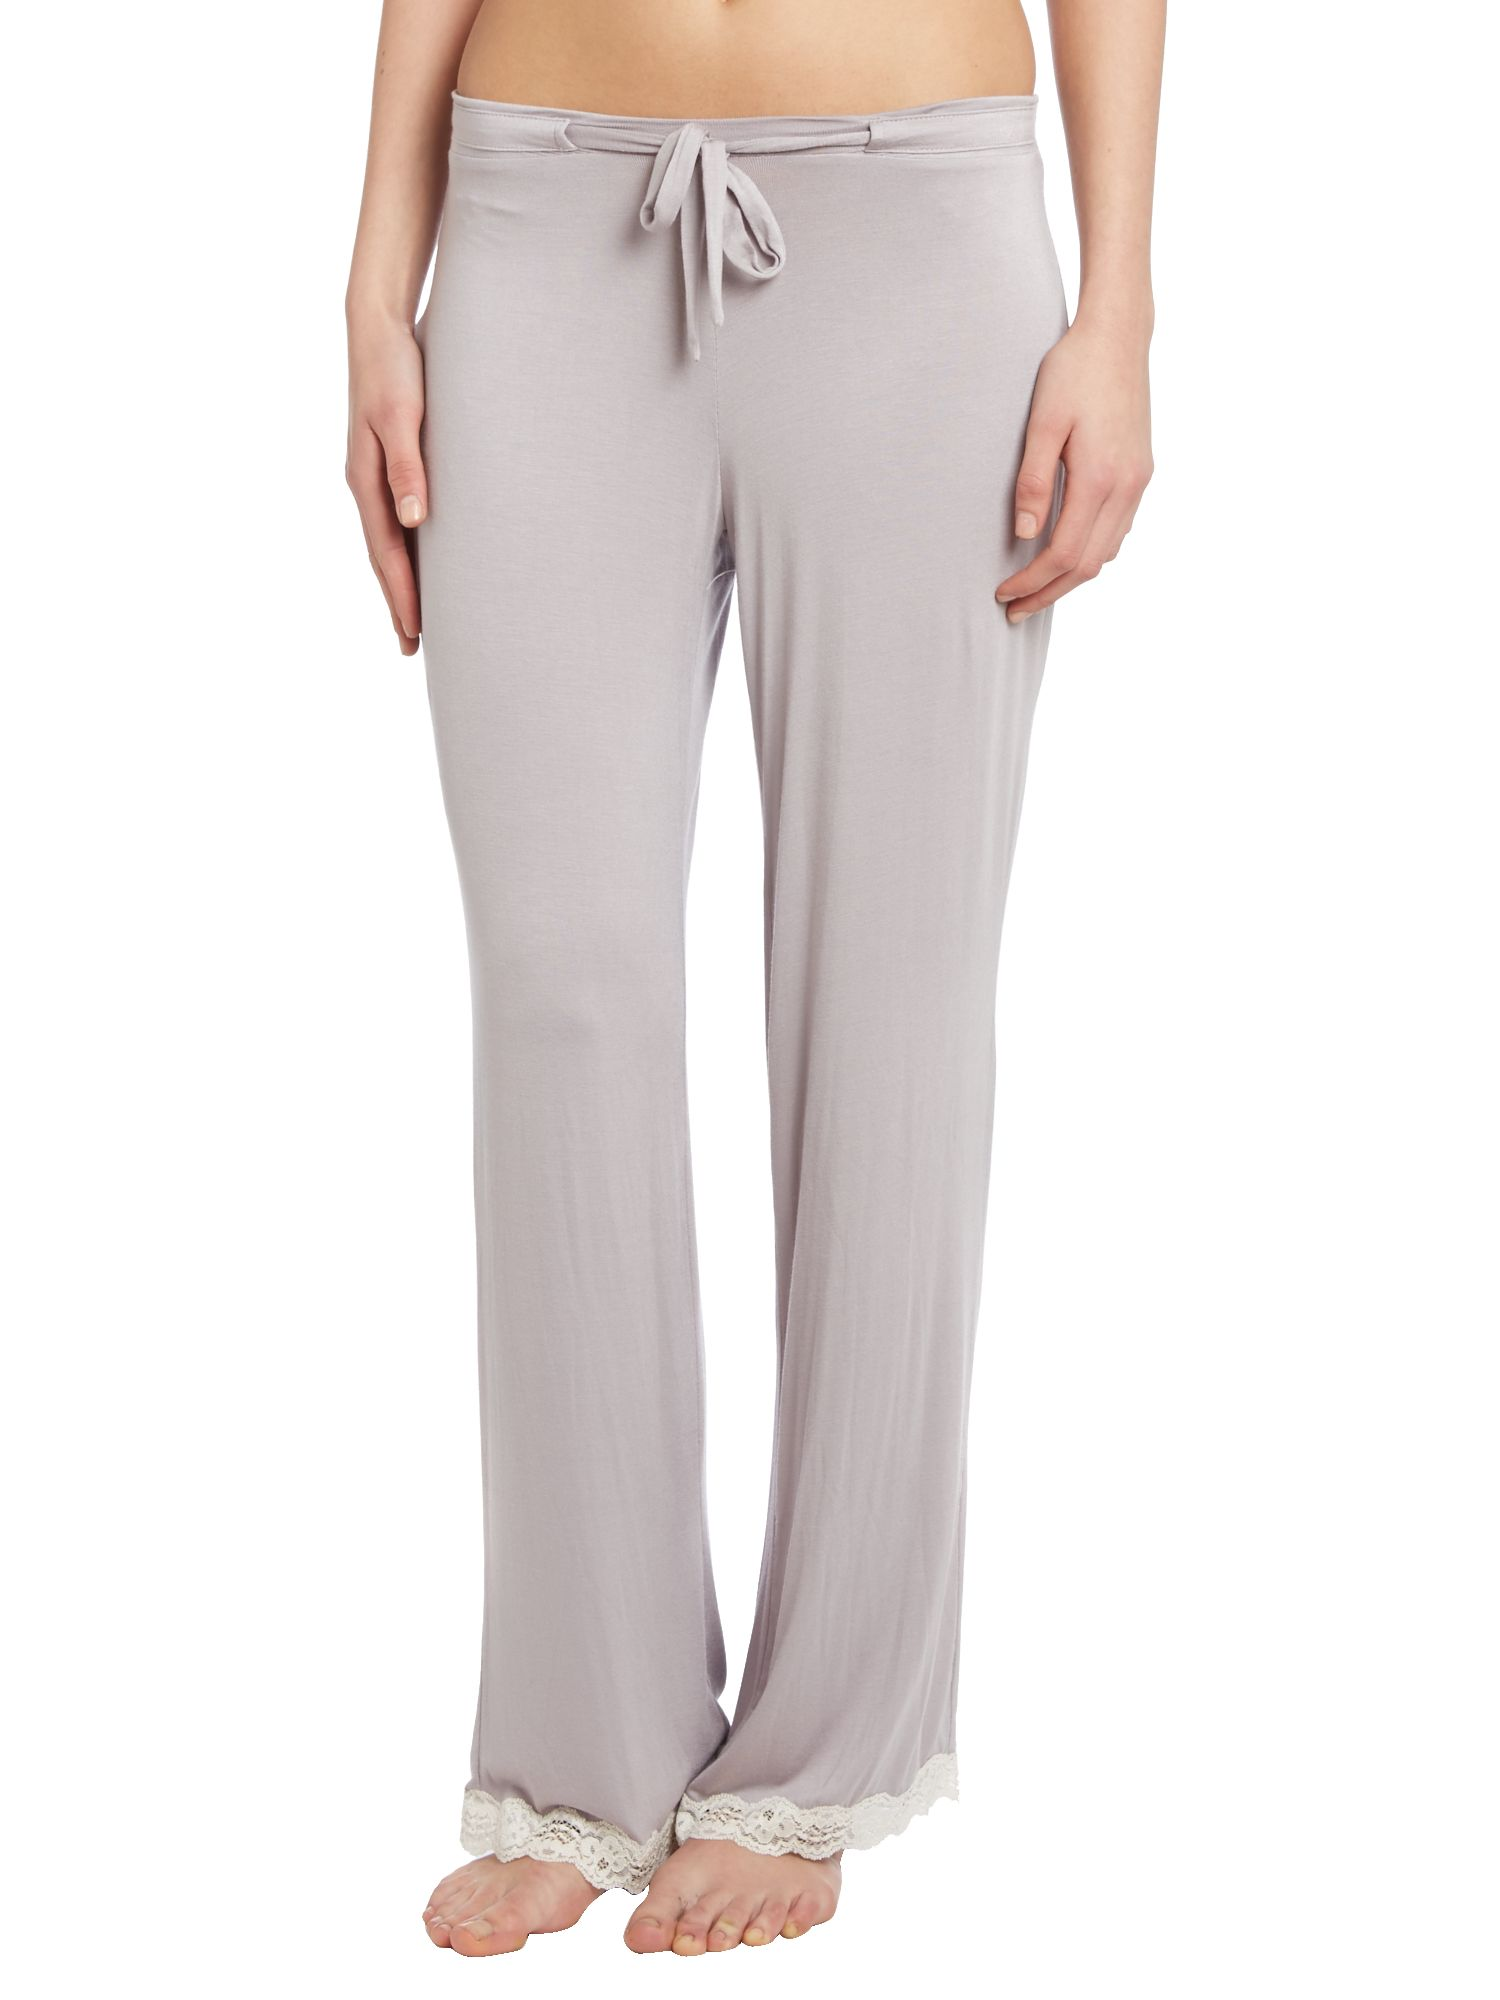 Jersey lace trim trouser